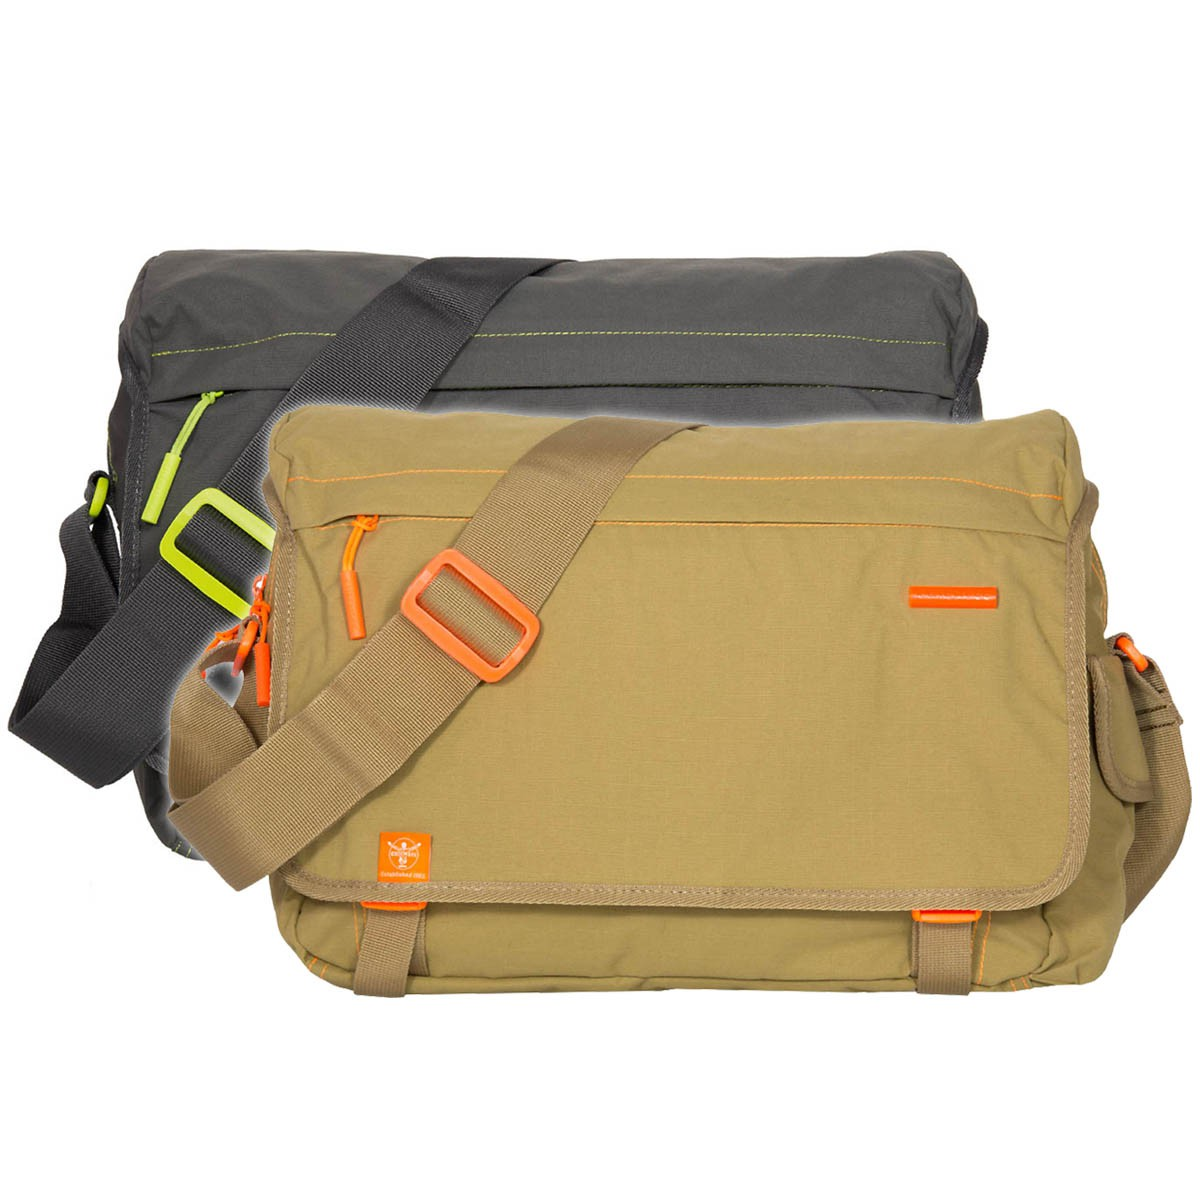 Chiemsee Shoulderbag Umhängetasche Messenger 5070215